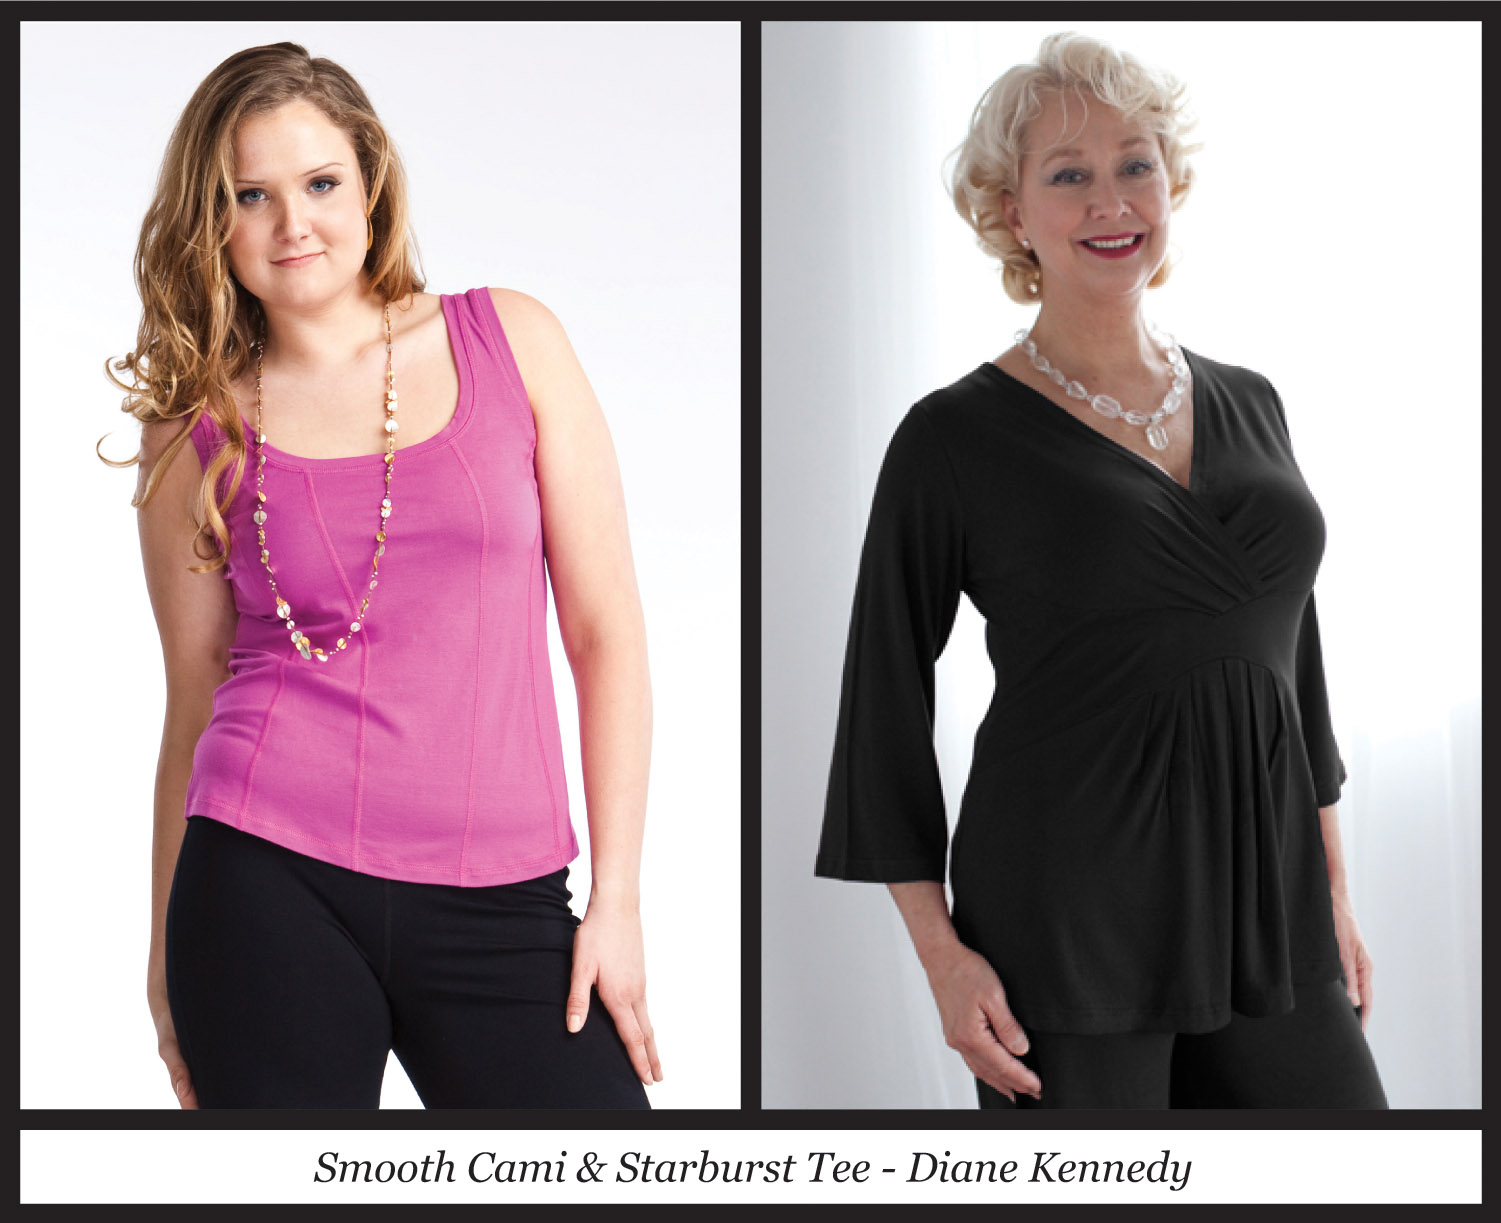 Plus Size Proportions: Hourglass Shape